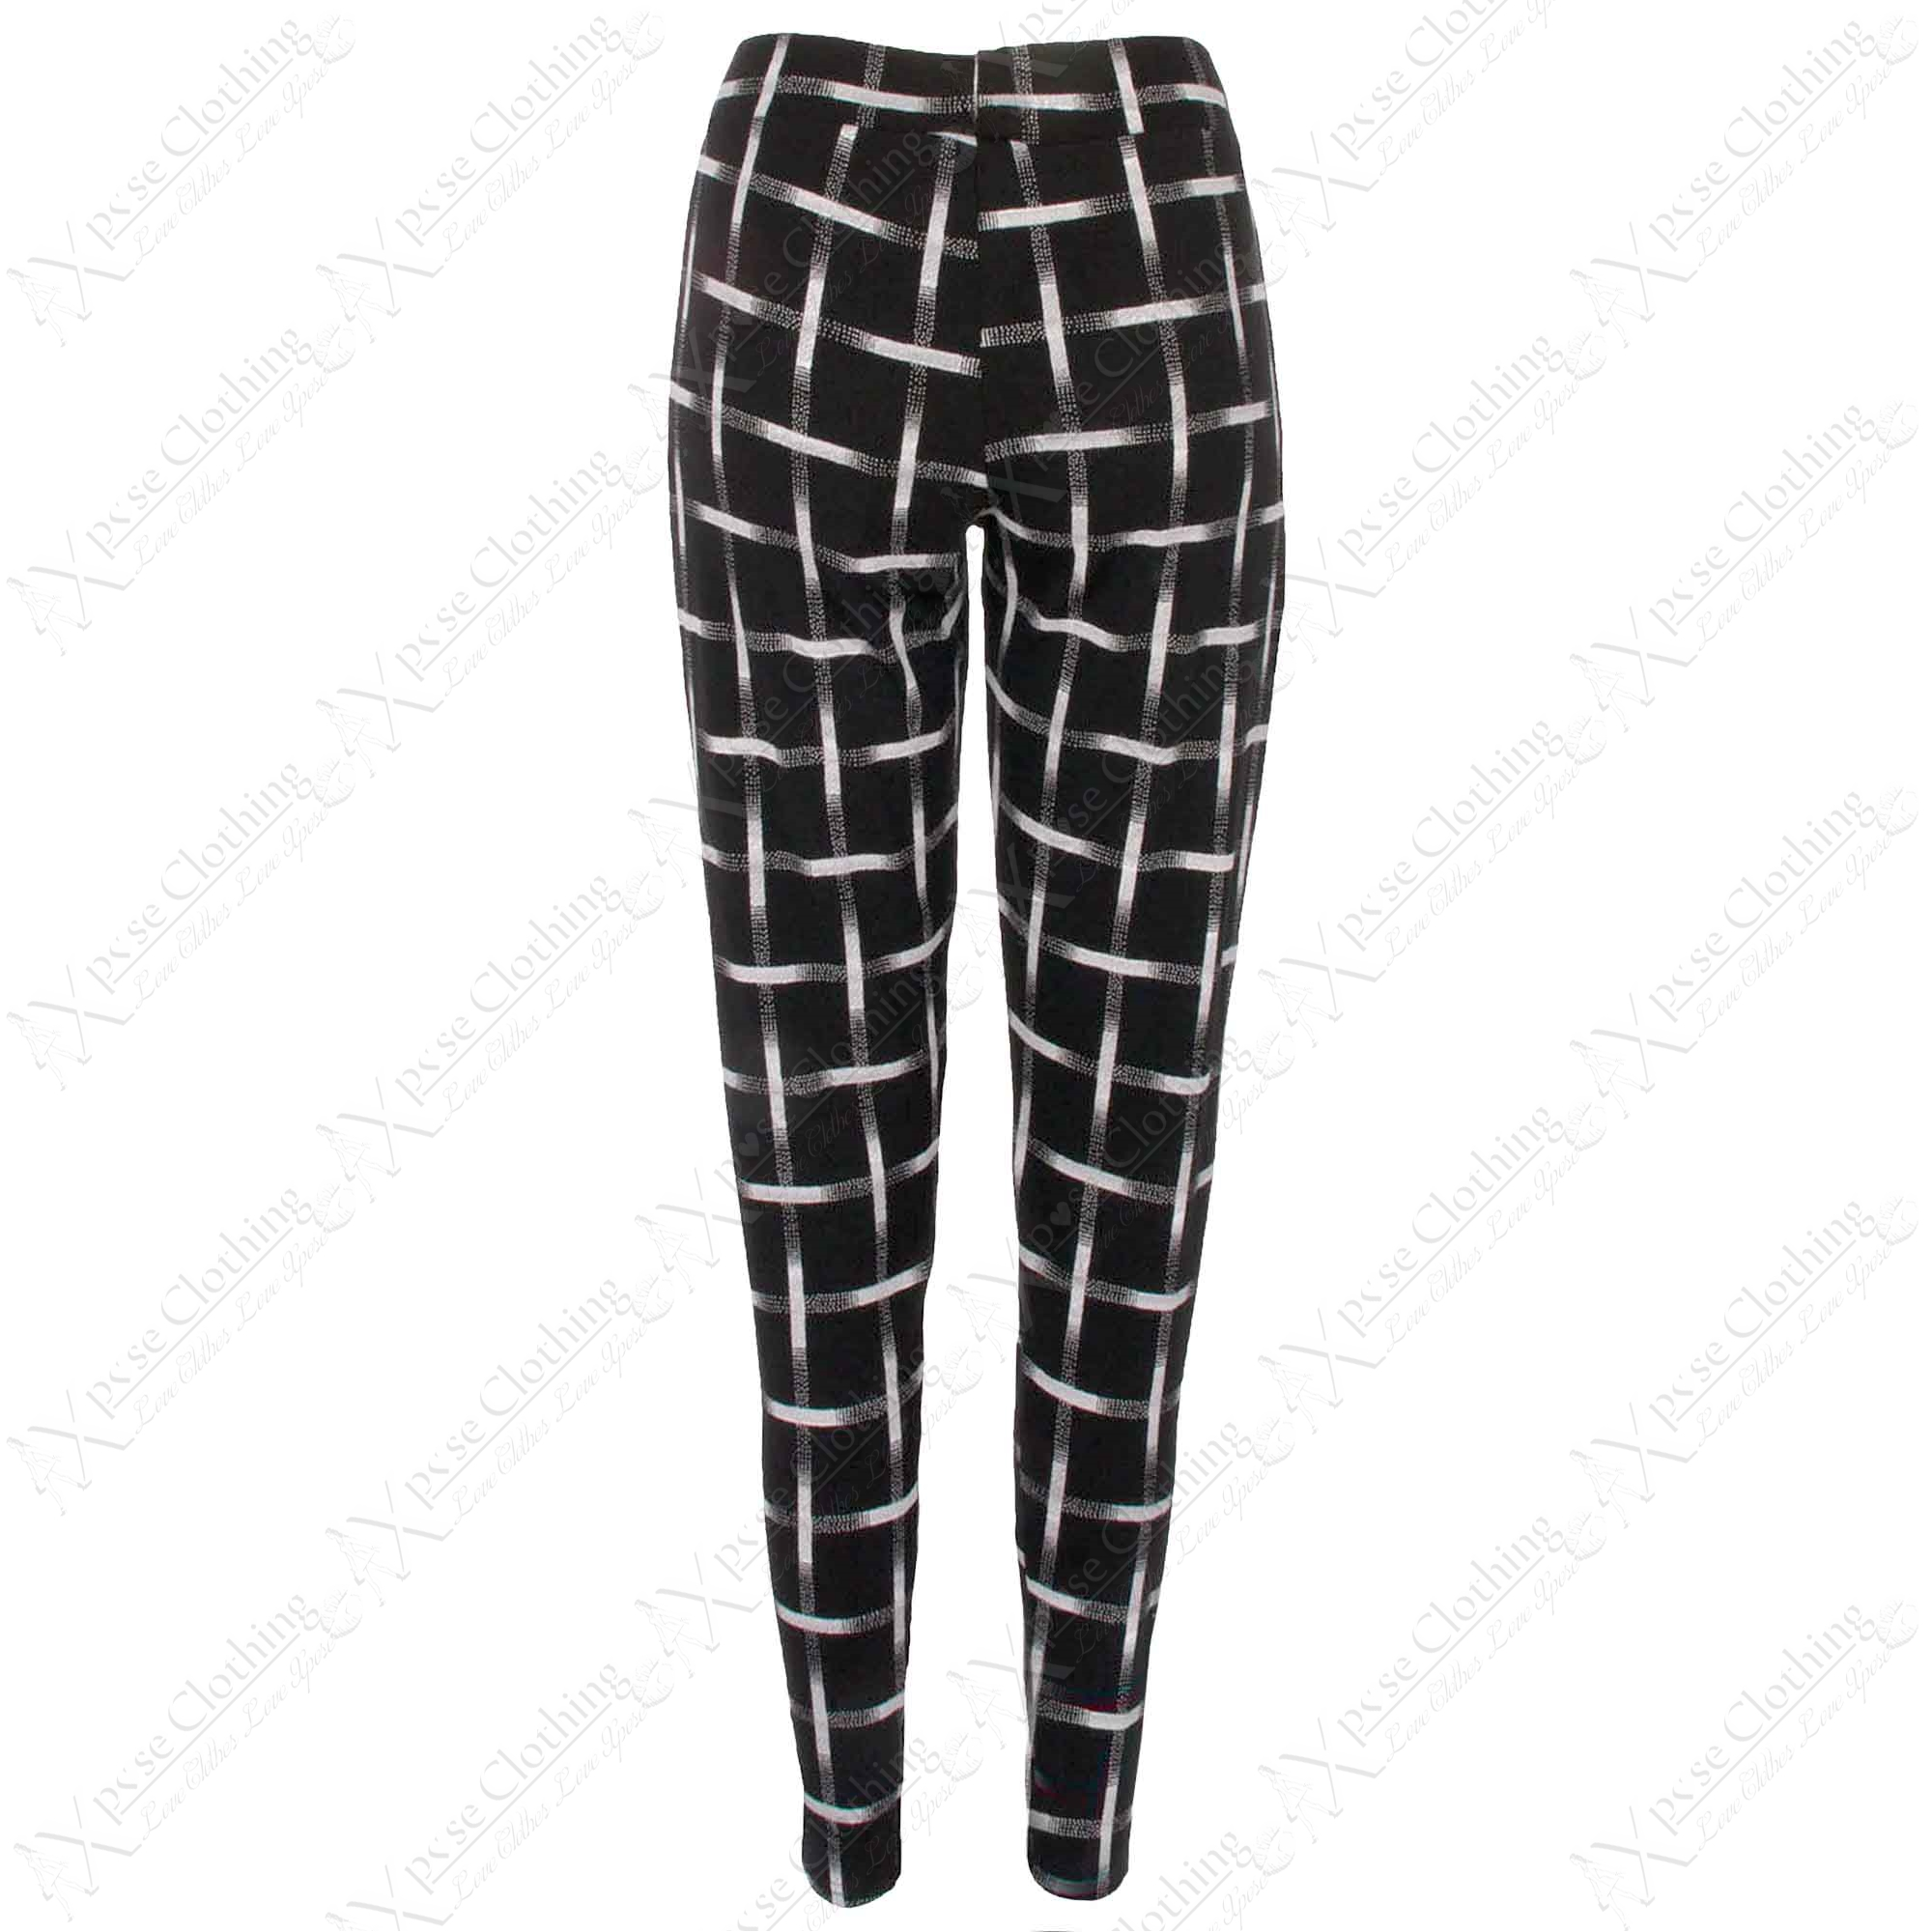 Check out New Look's latest women's trousers for chic culottes, flared trousers and more summer trousers styles. Free delivery available on all pants for women.